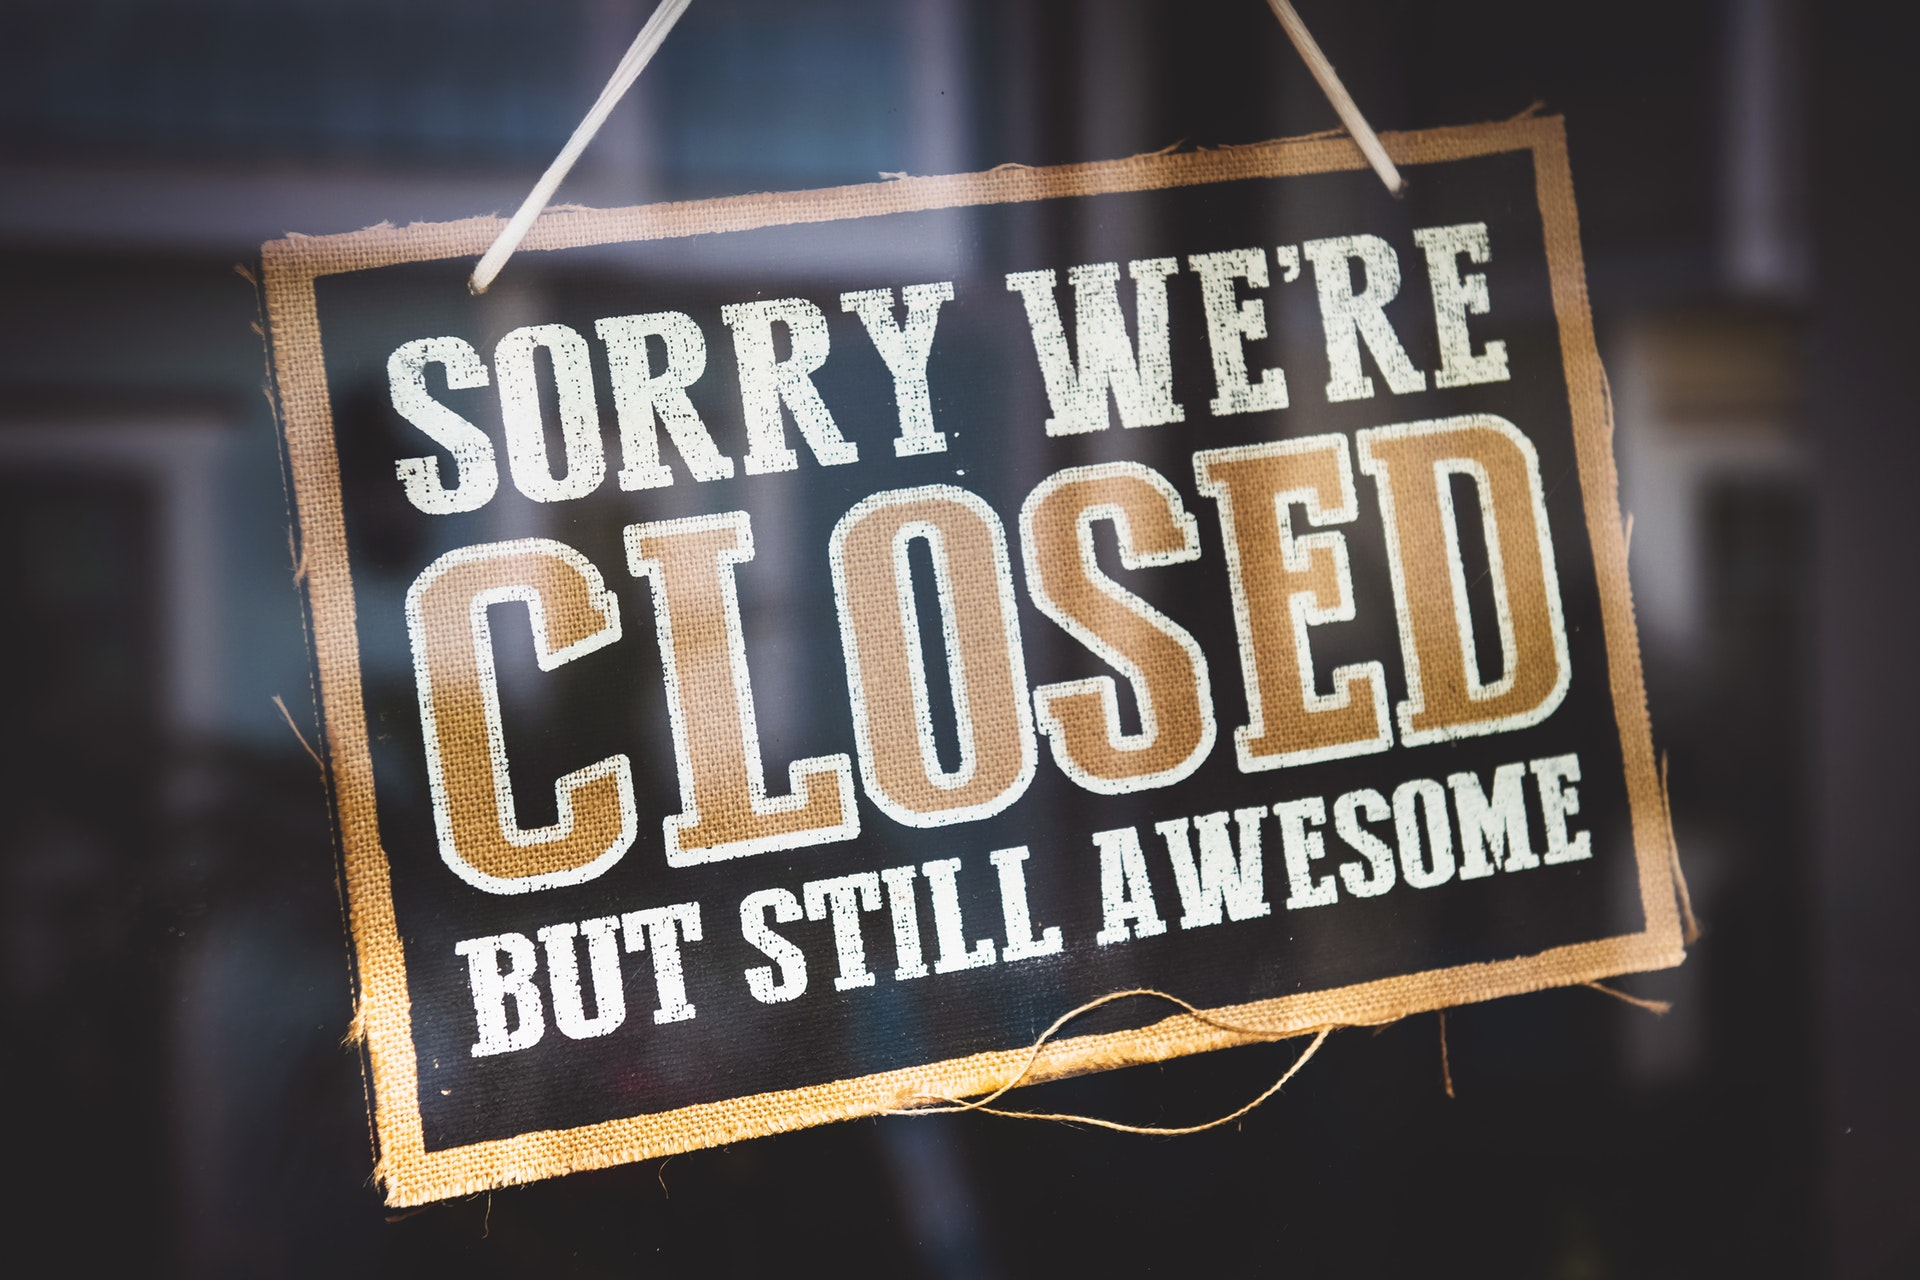 RallyPoint is Closed November 5, 2019 for a private event